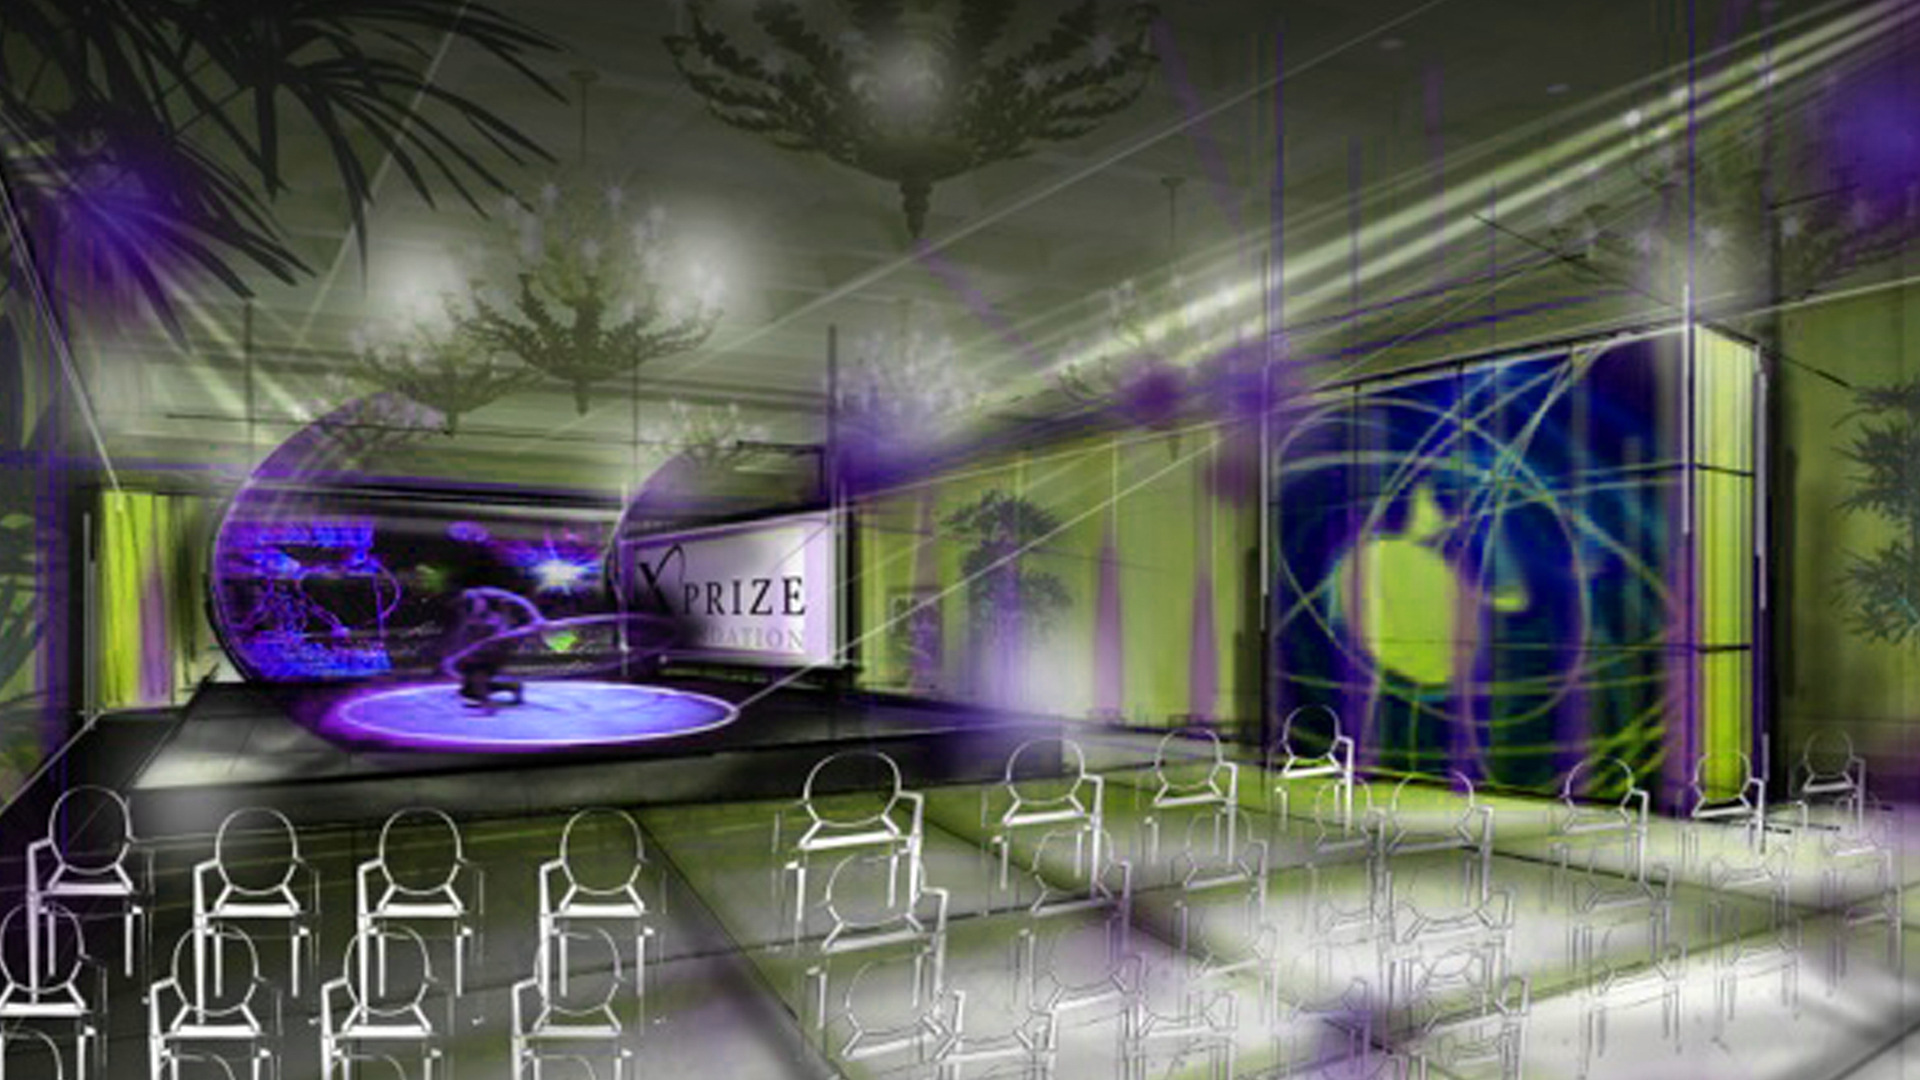 Concept illustration for XPize Foundation 4 Day Event Think Tank live opening night ceremony